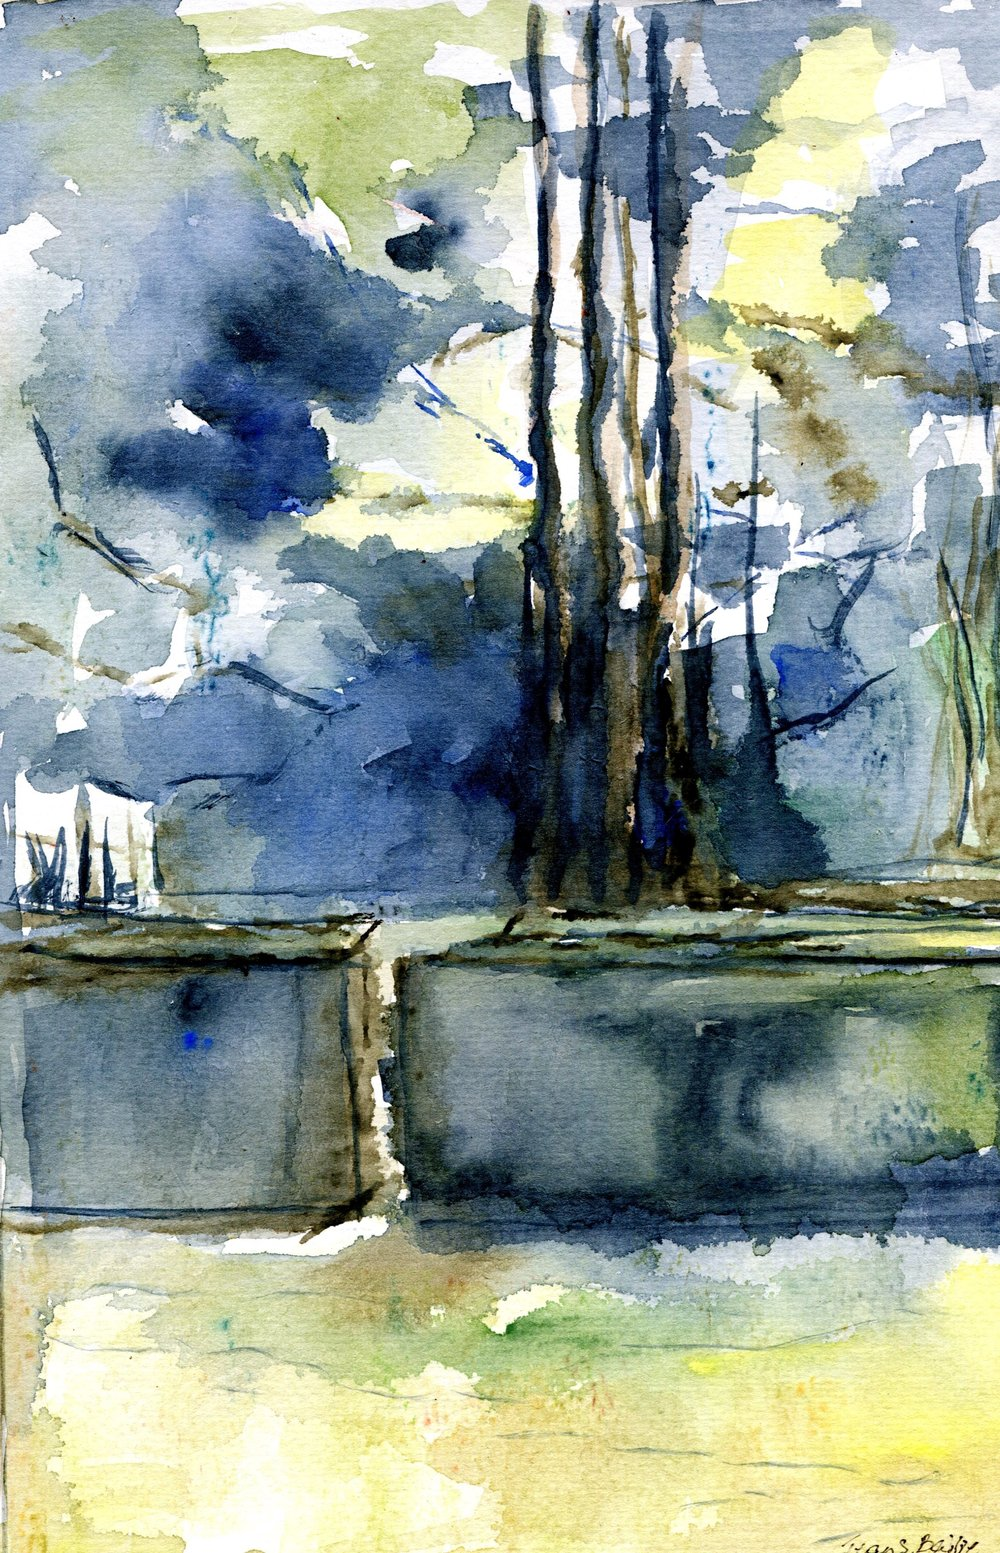 40a Jean Bailie, A Watery Day, Watercolour on paper